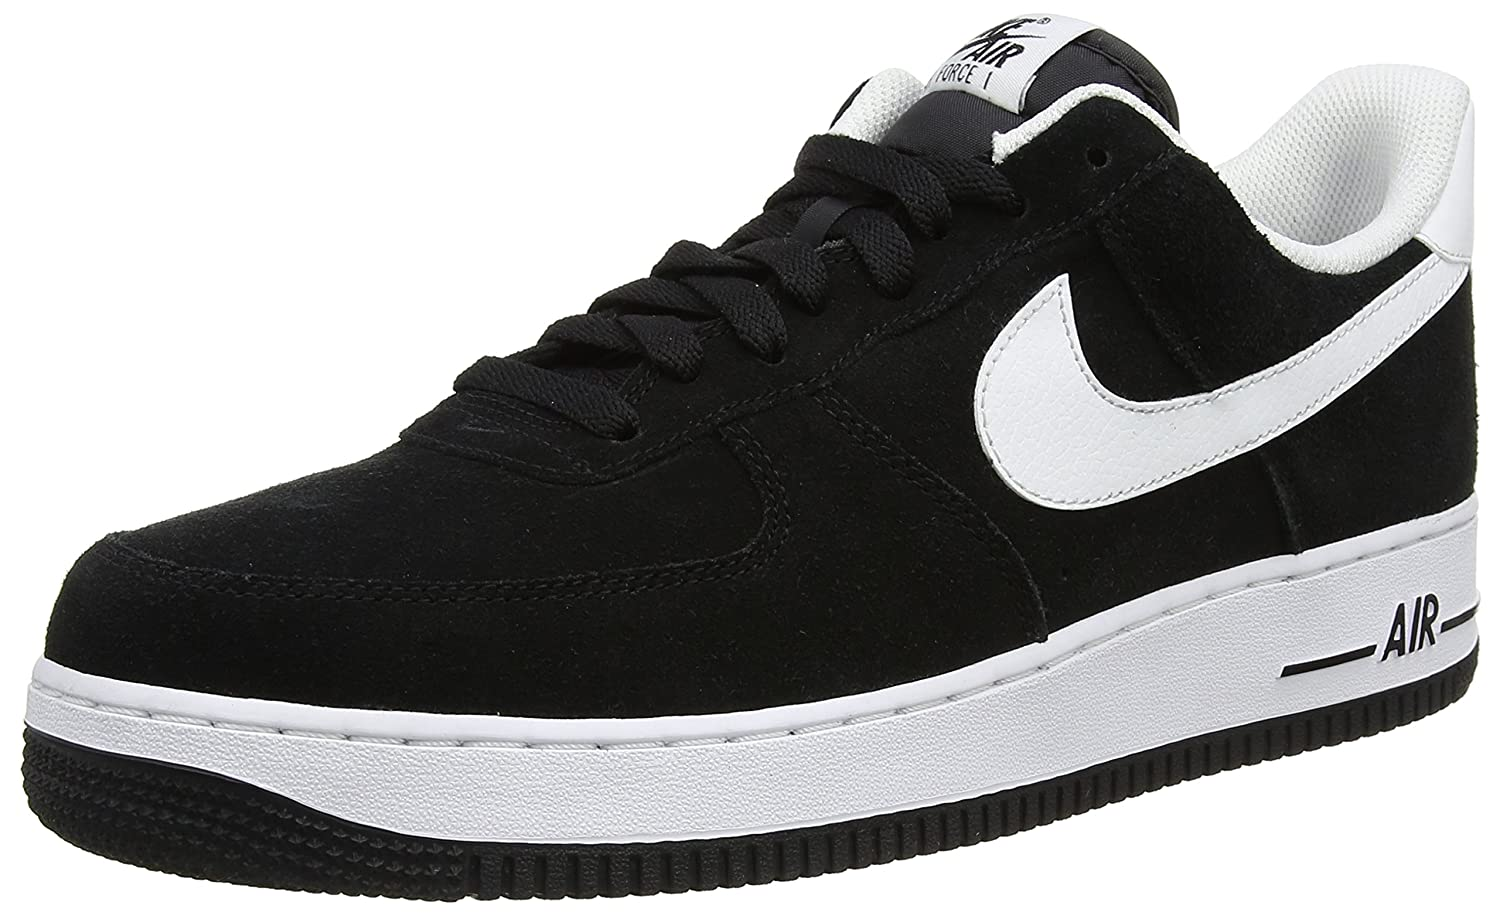 0a74609419ae2 Amazon.com | Nike Men's Air Force 1 Low Sneaker | Basketball